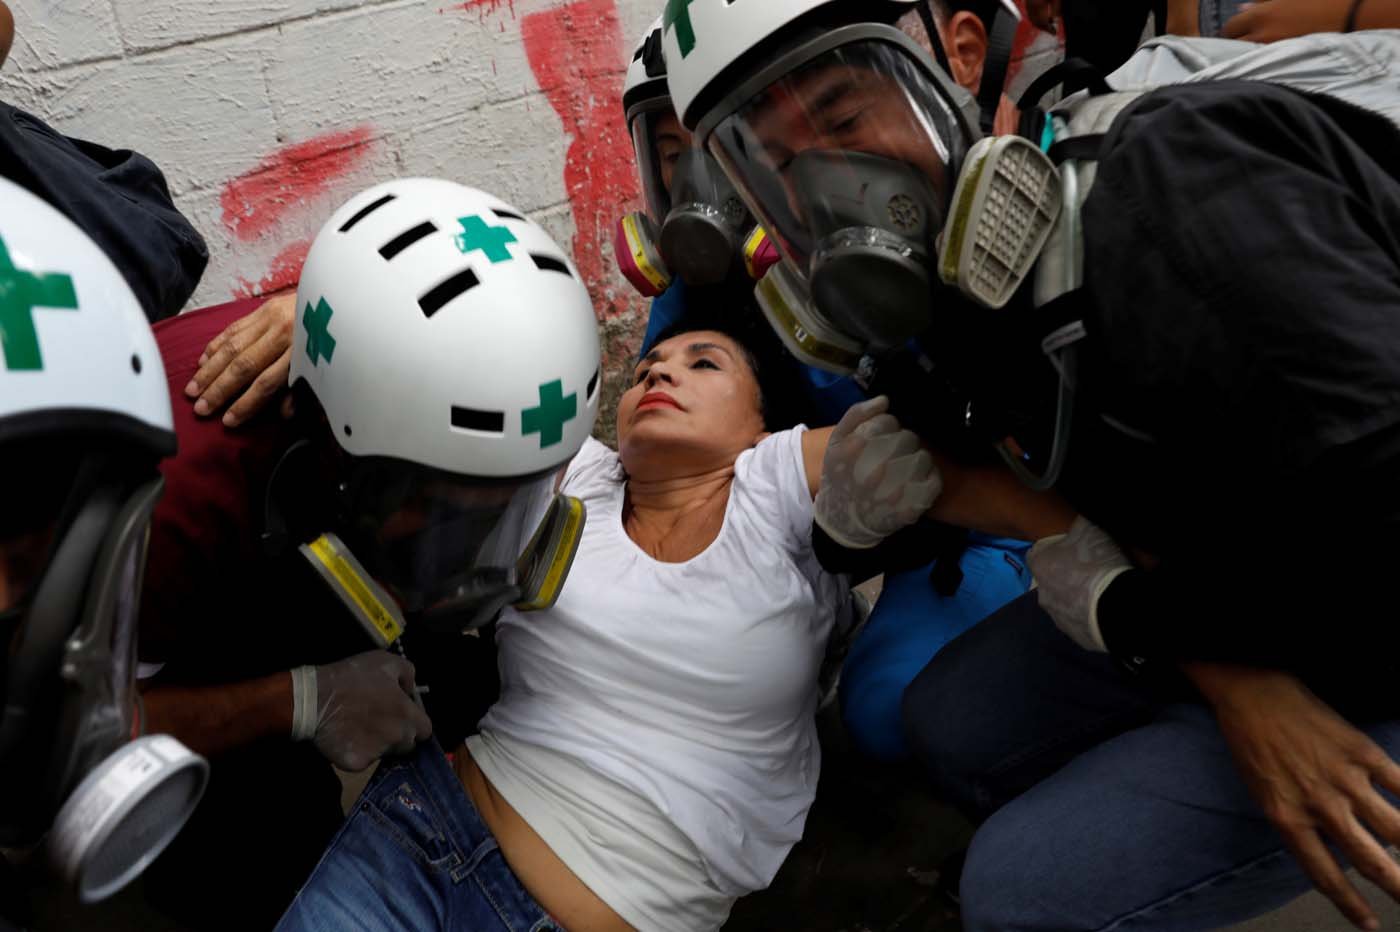 Volunteer members of a primary care response team help an injured demonstrator during the 'march of the empty pots' against Venezuelan President Nicolas Maduro's government in Caracas, Venezuela, June 3, 2017. REUTERS/Carlos Garcia Rawlins